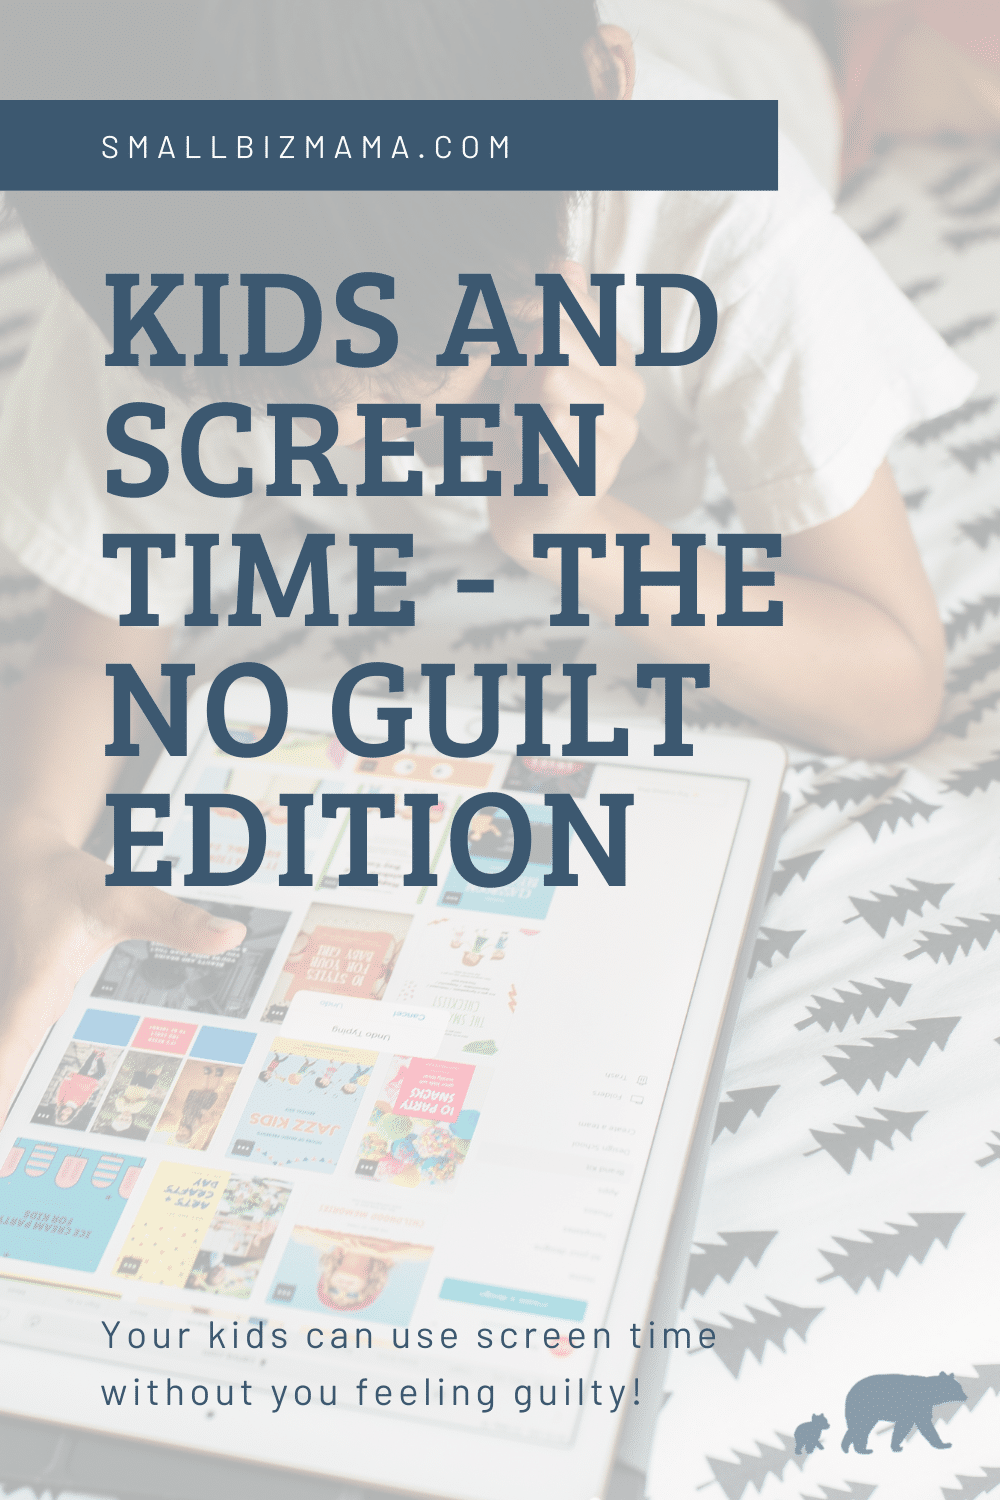 Kids and screen time - the no guilt edition